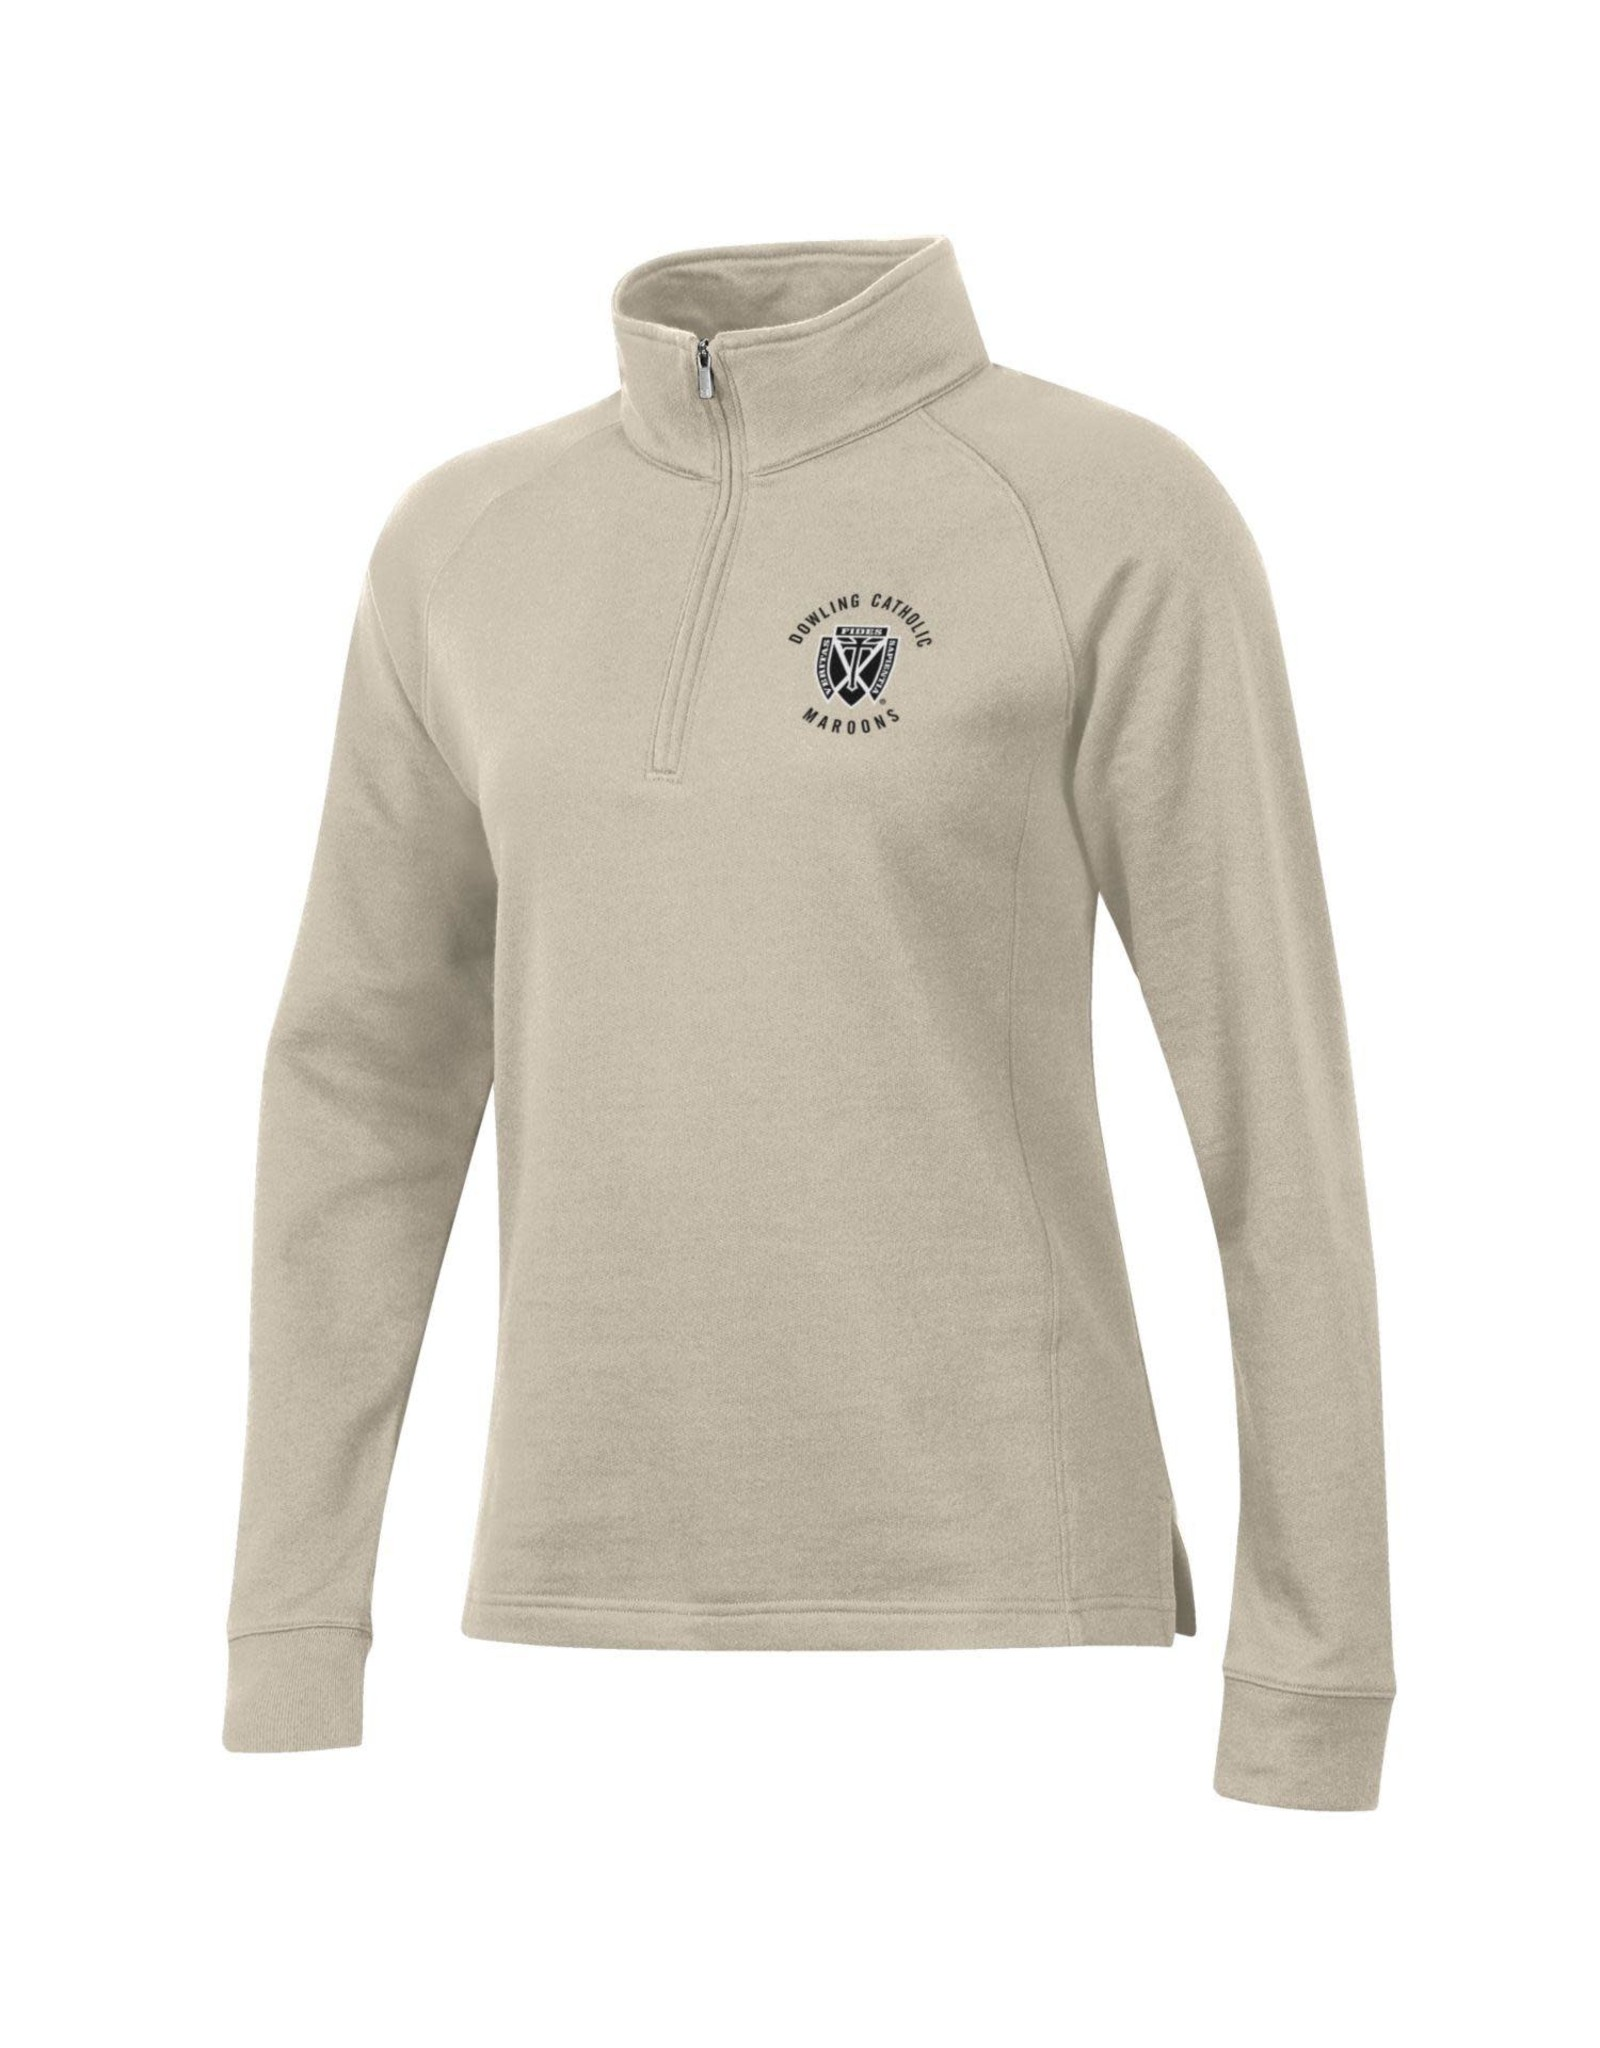 Gear Gear Women's Relax 1/4 Zip